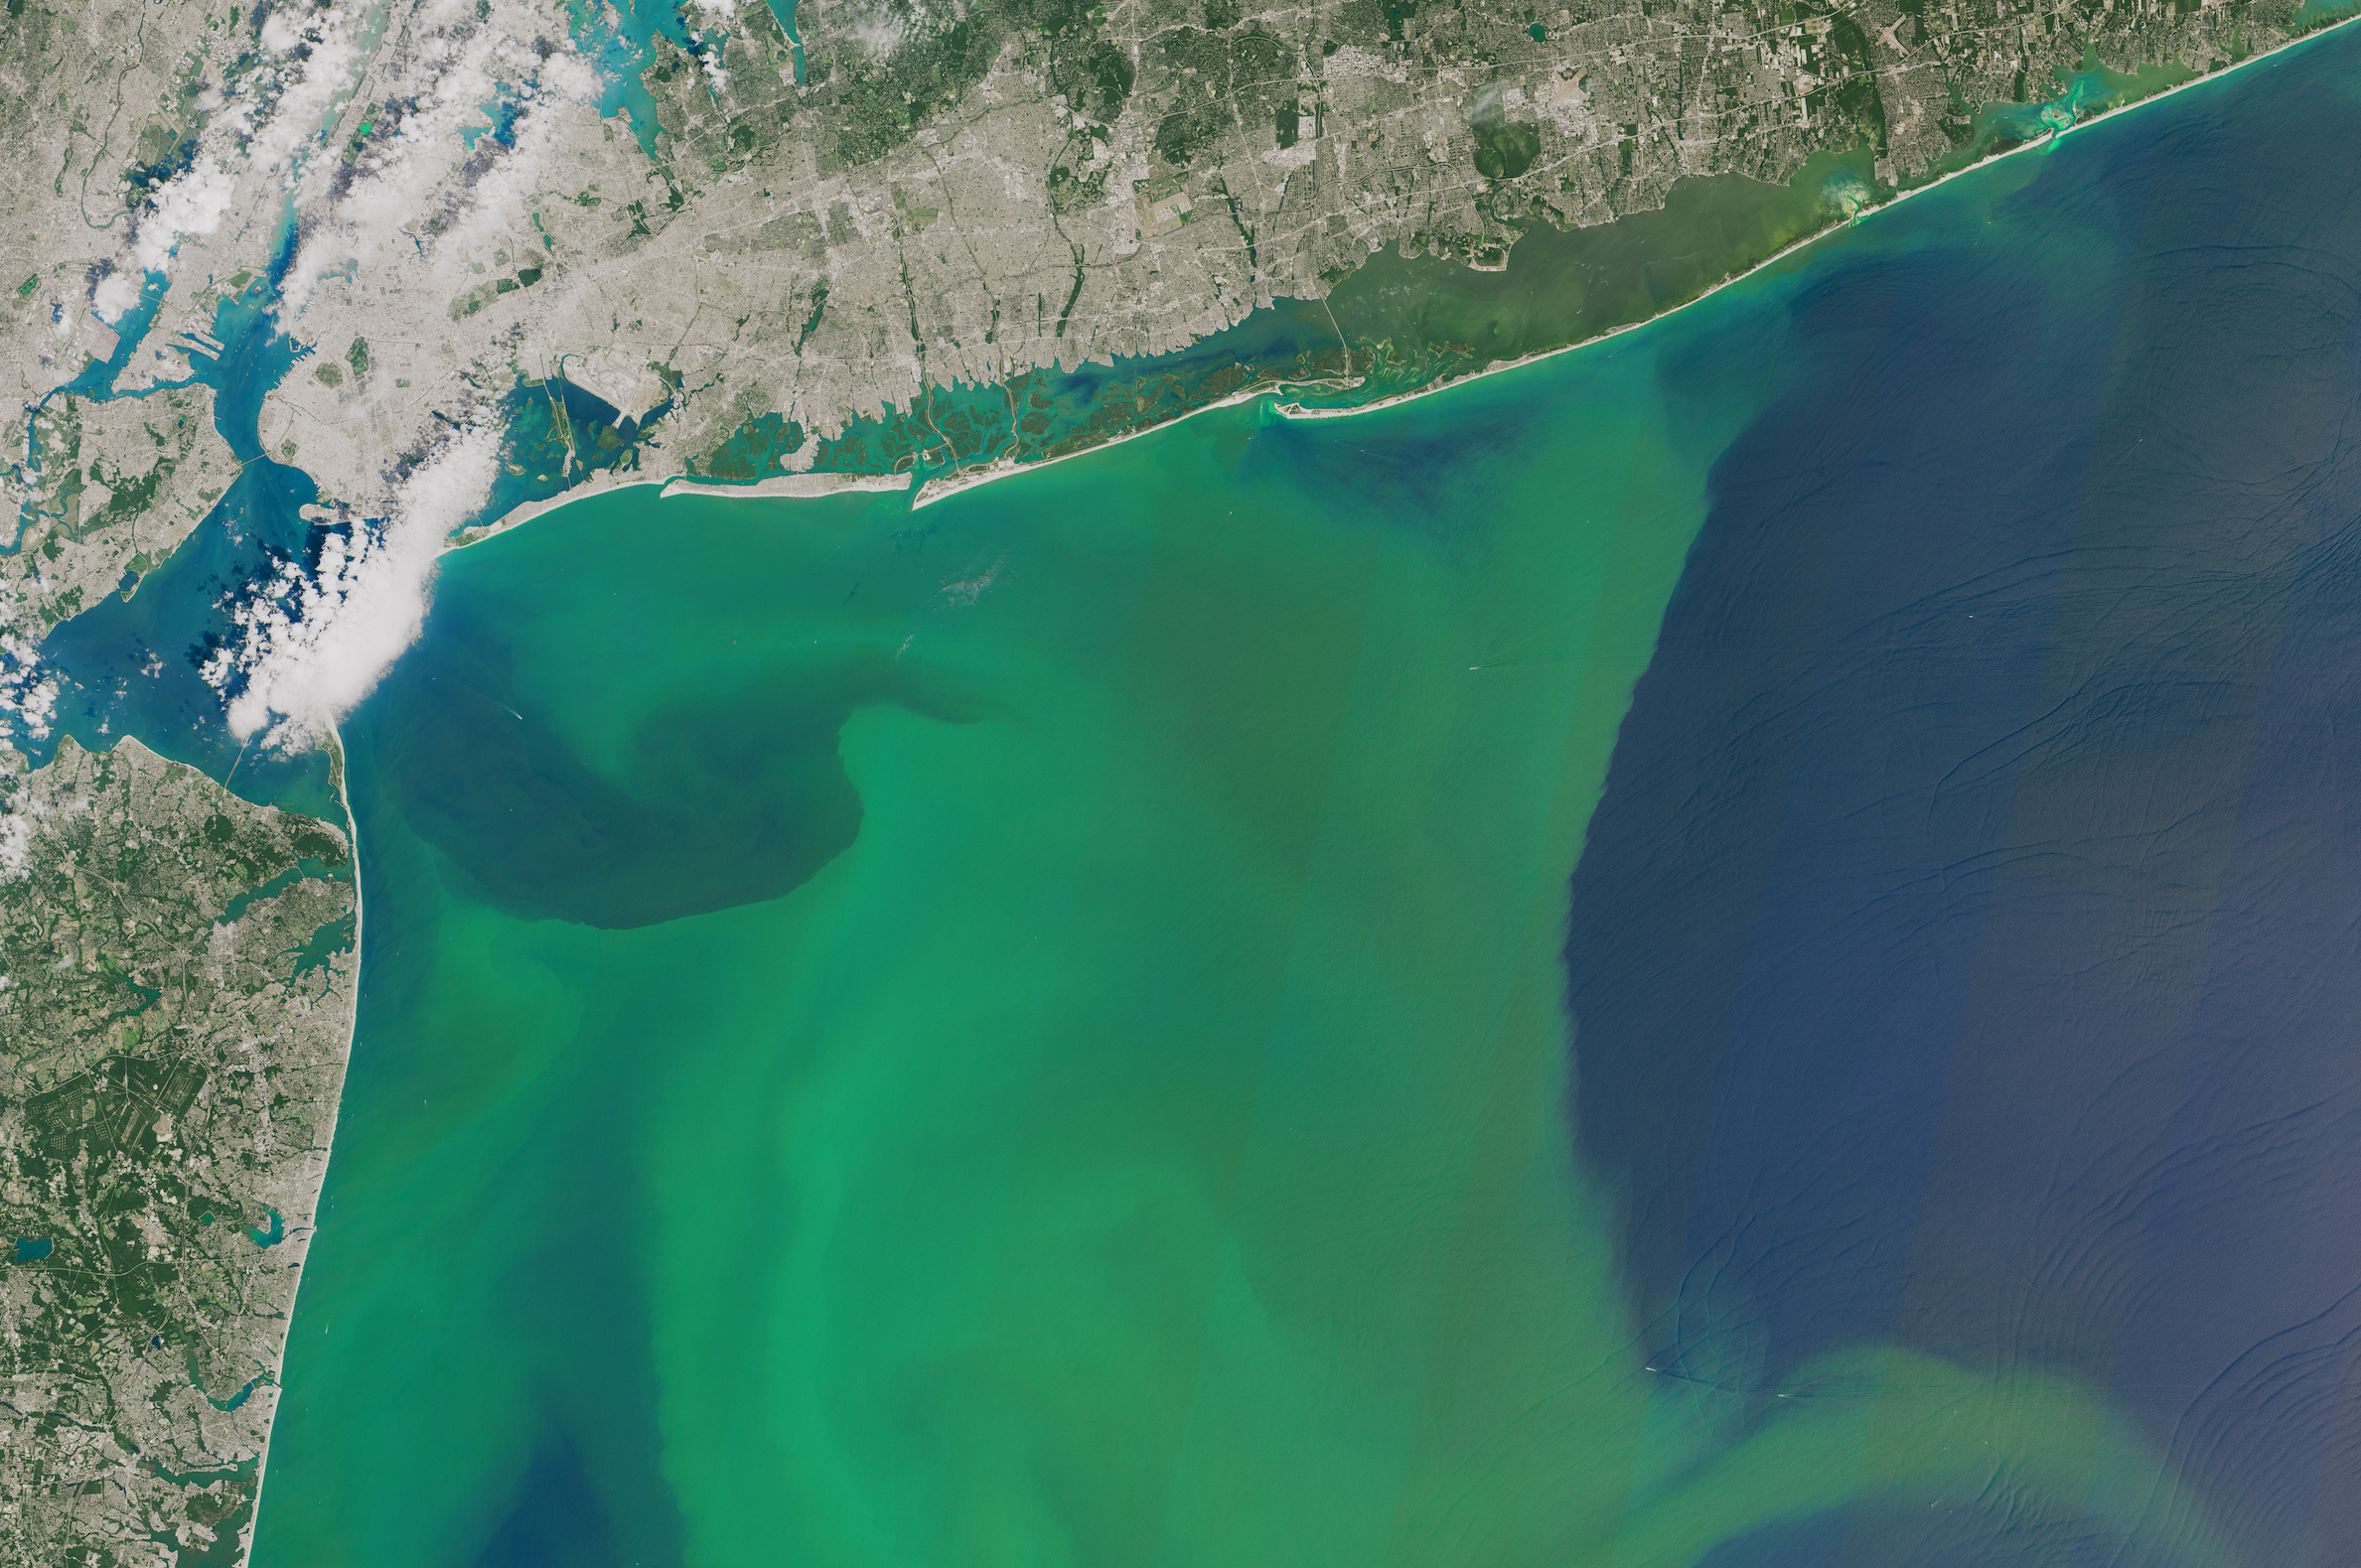 Phytoplankton is a plant microorganism which transforms the inorganic carbon present in the ocean into organic carbon through photosynthesis.